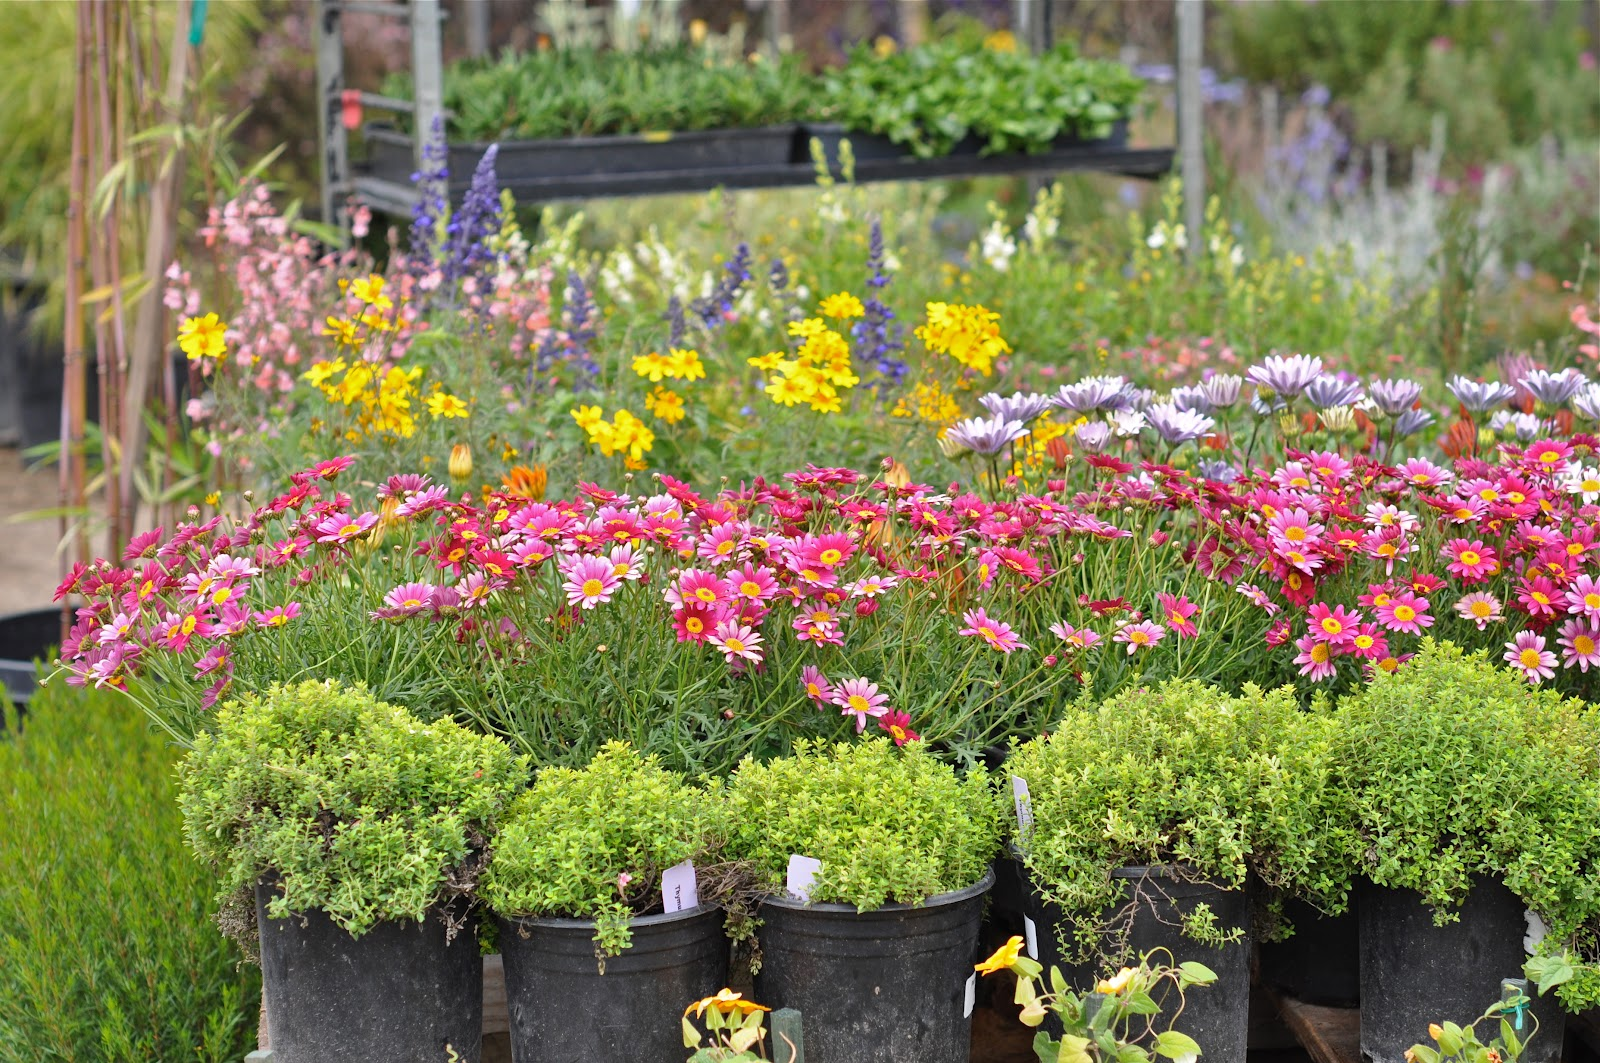 But i what really gets me in a bad way is the plant nursery